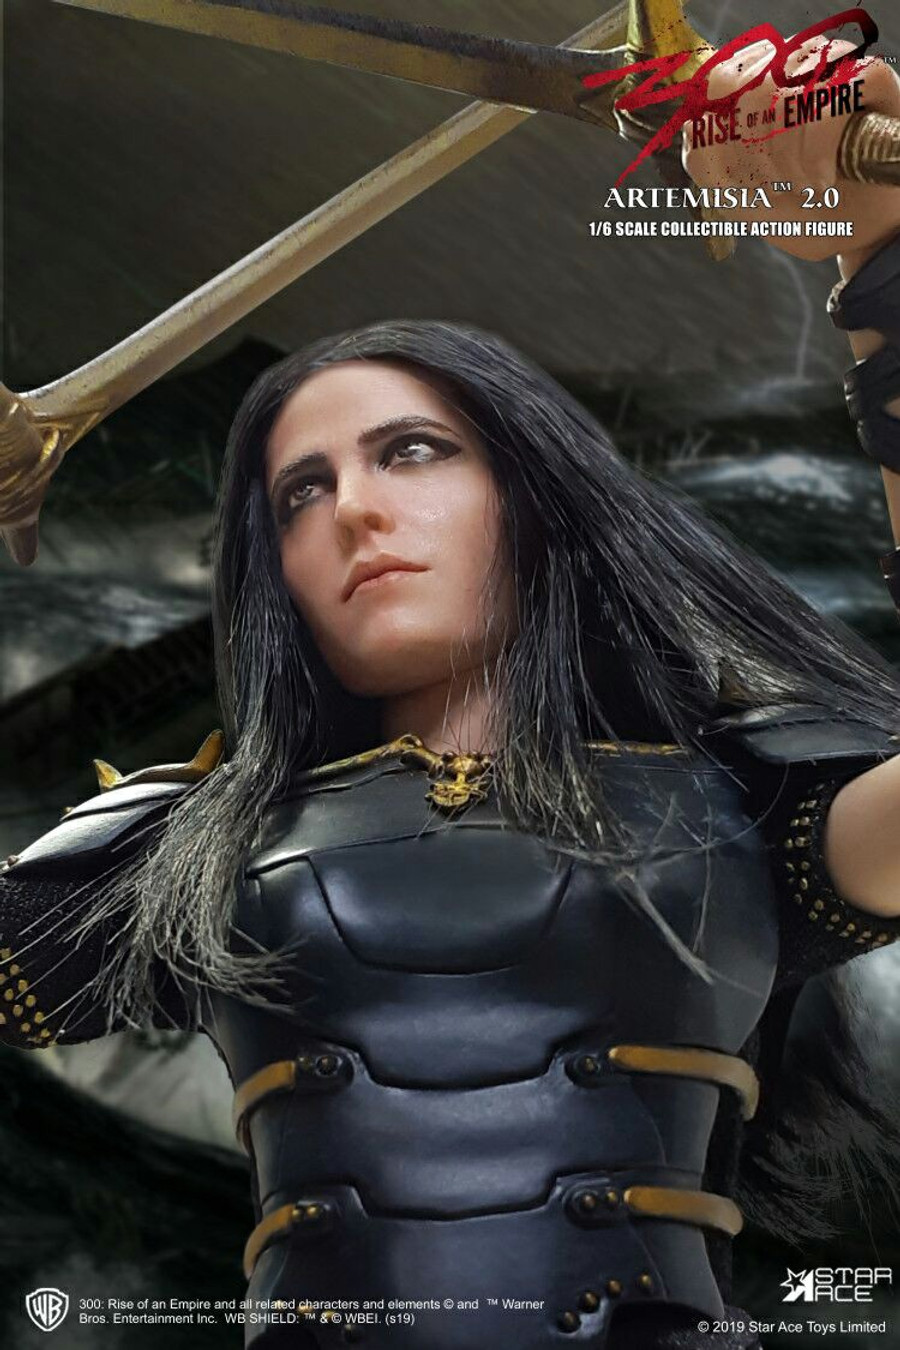 Star Ace - 300: Rise of an Empire - Artemisia 2.0